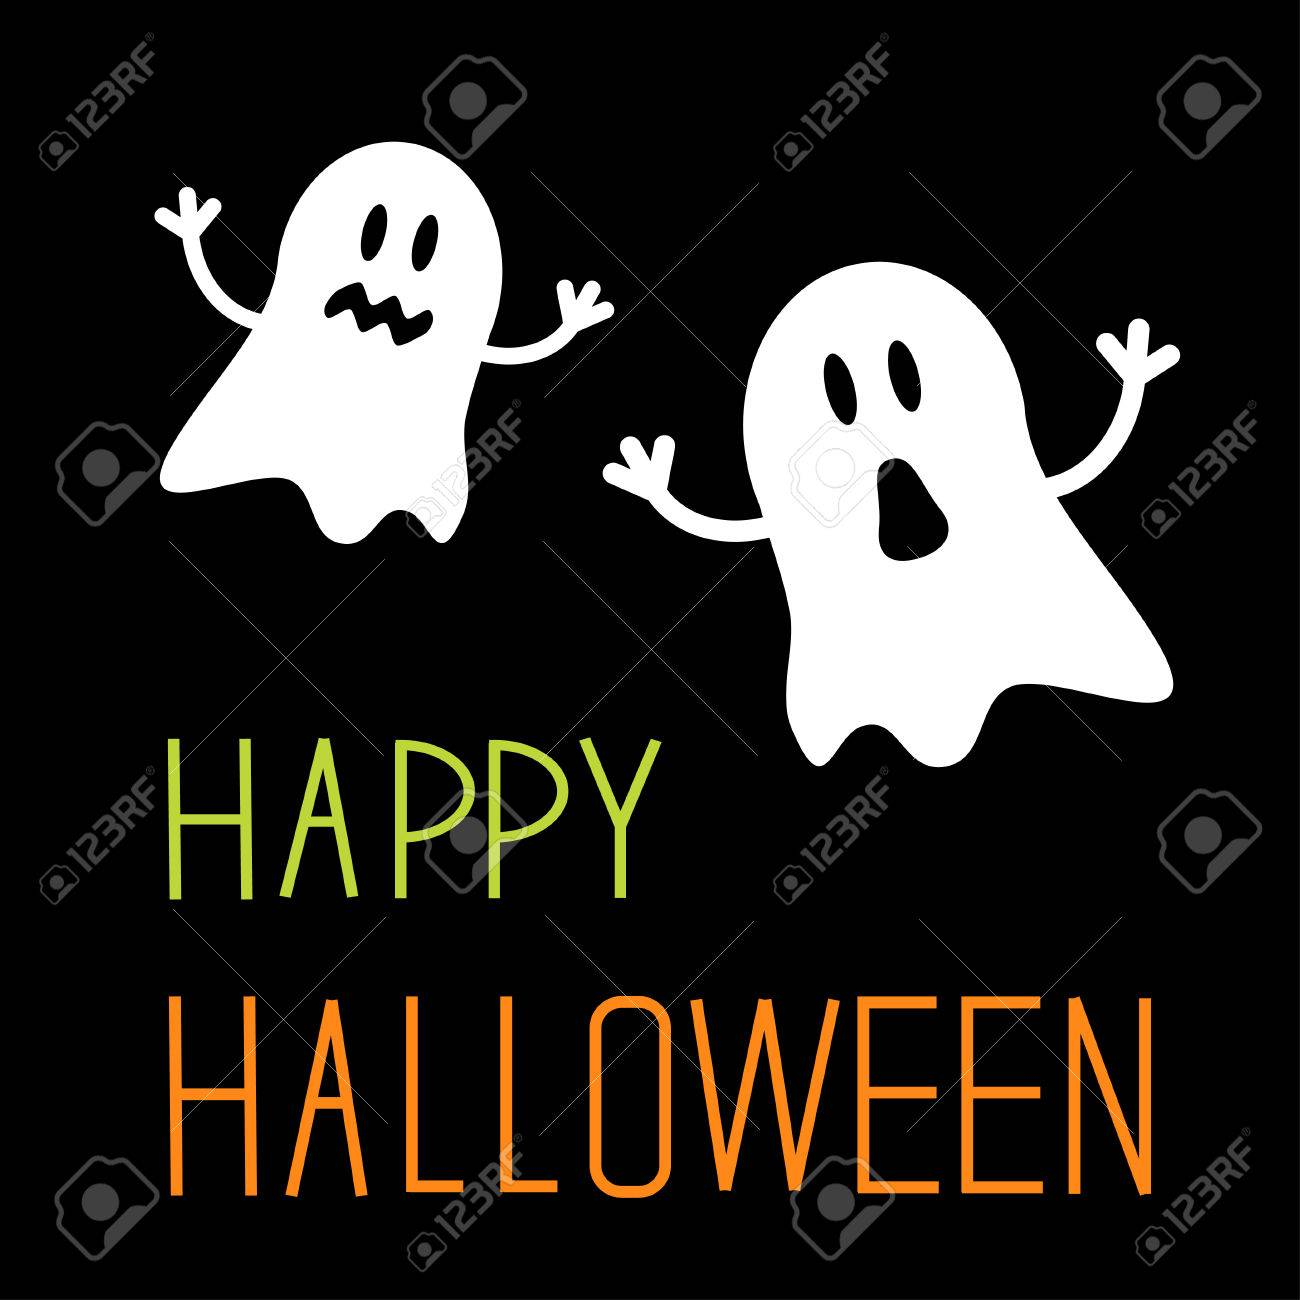 Two Funny Halloween Ghosts Card Illustration Royalty Free Cliparts ...